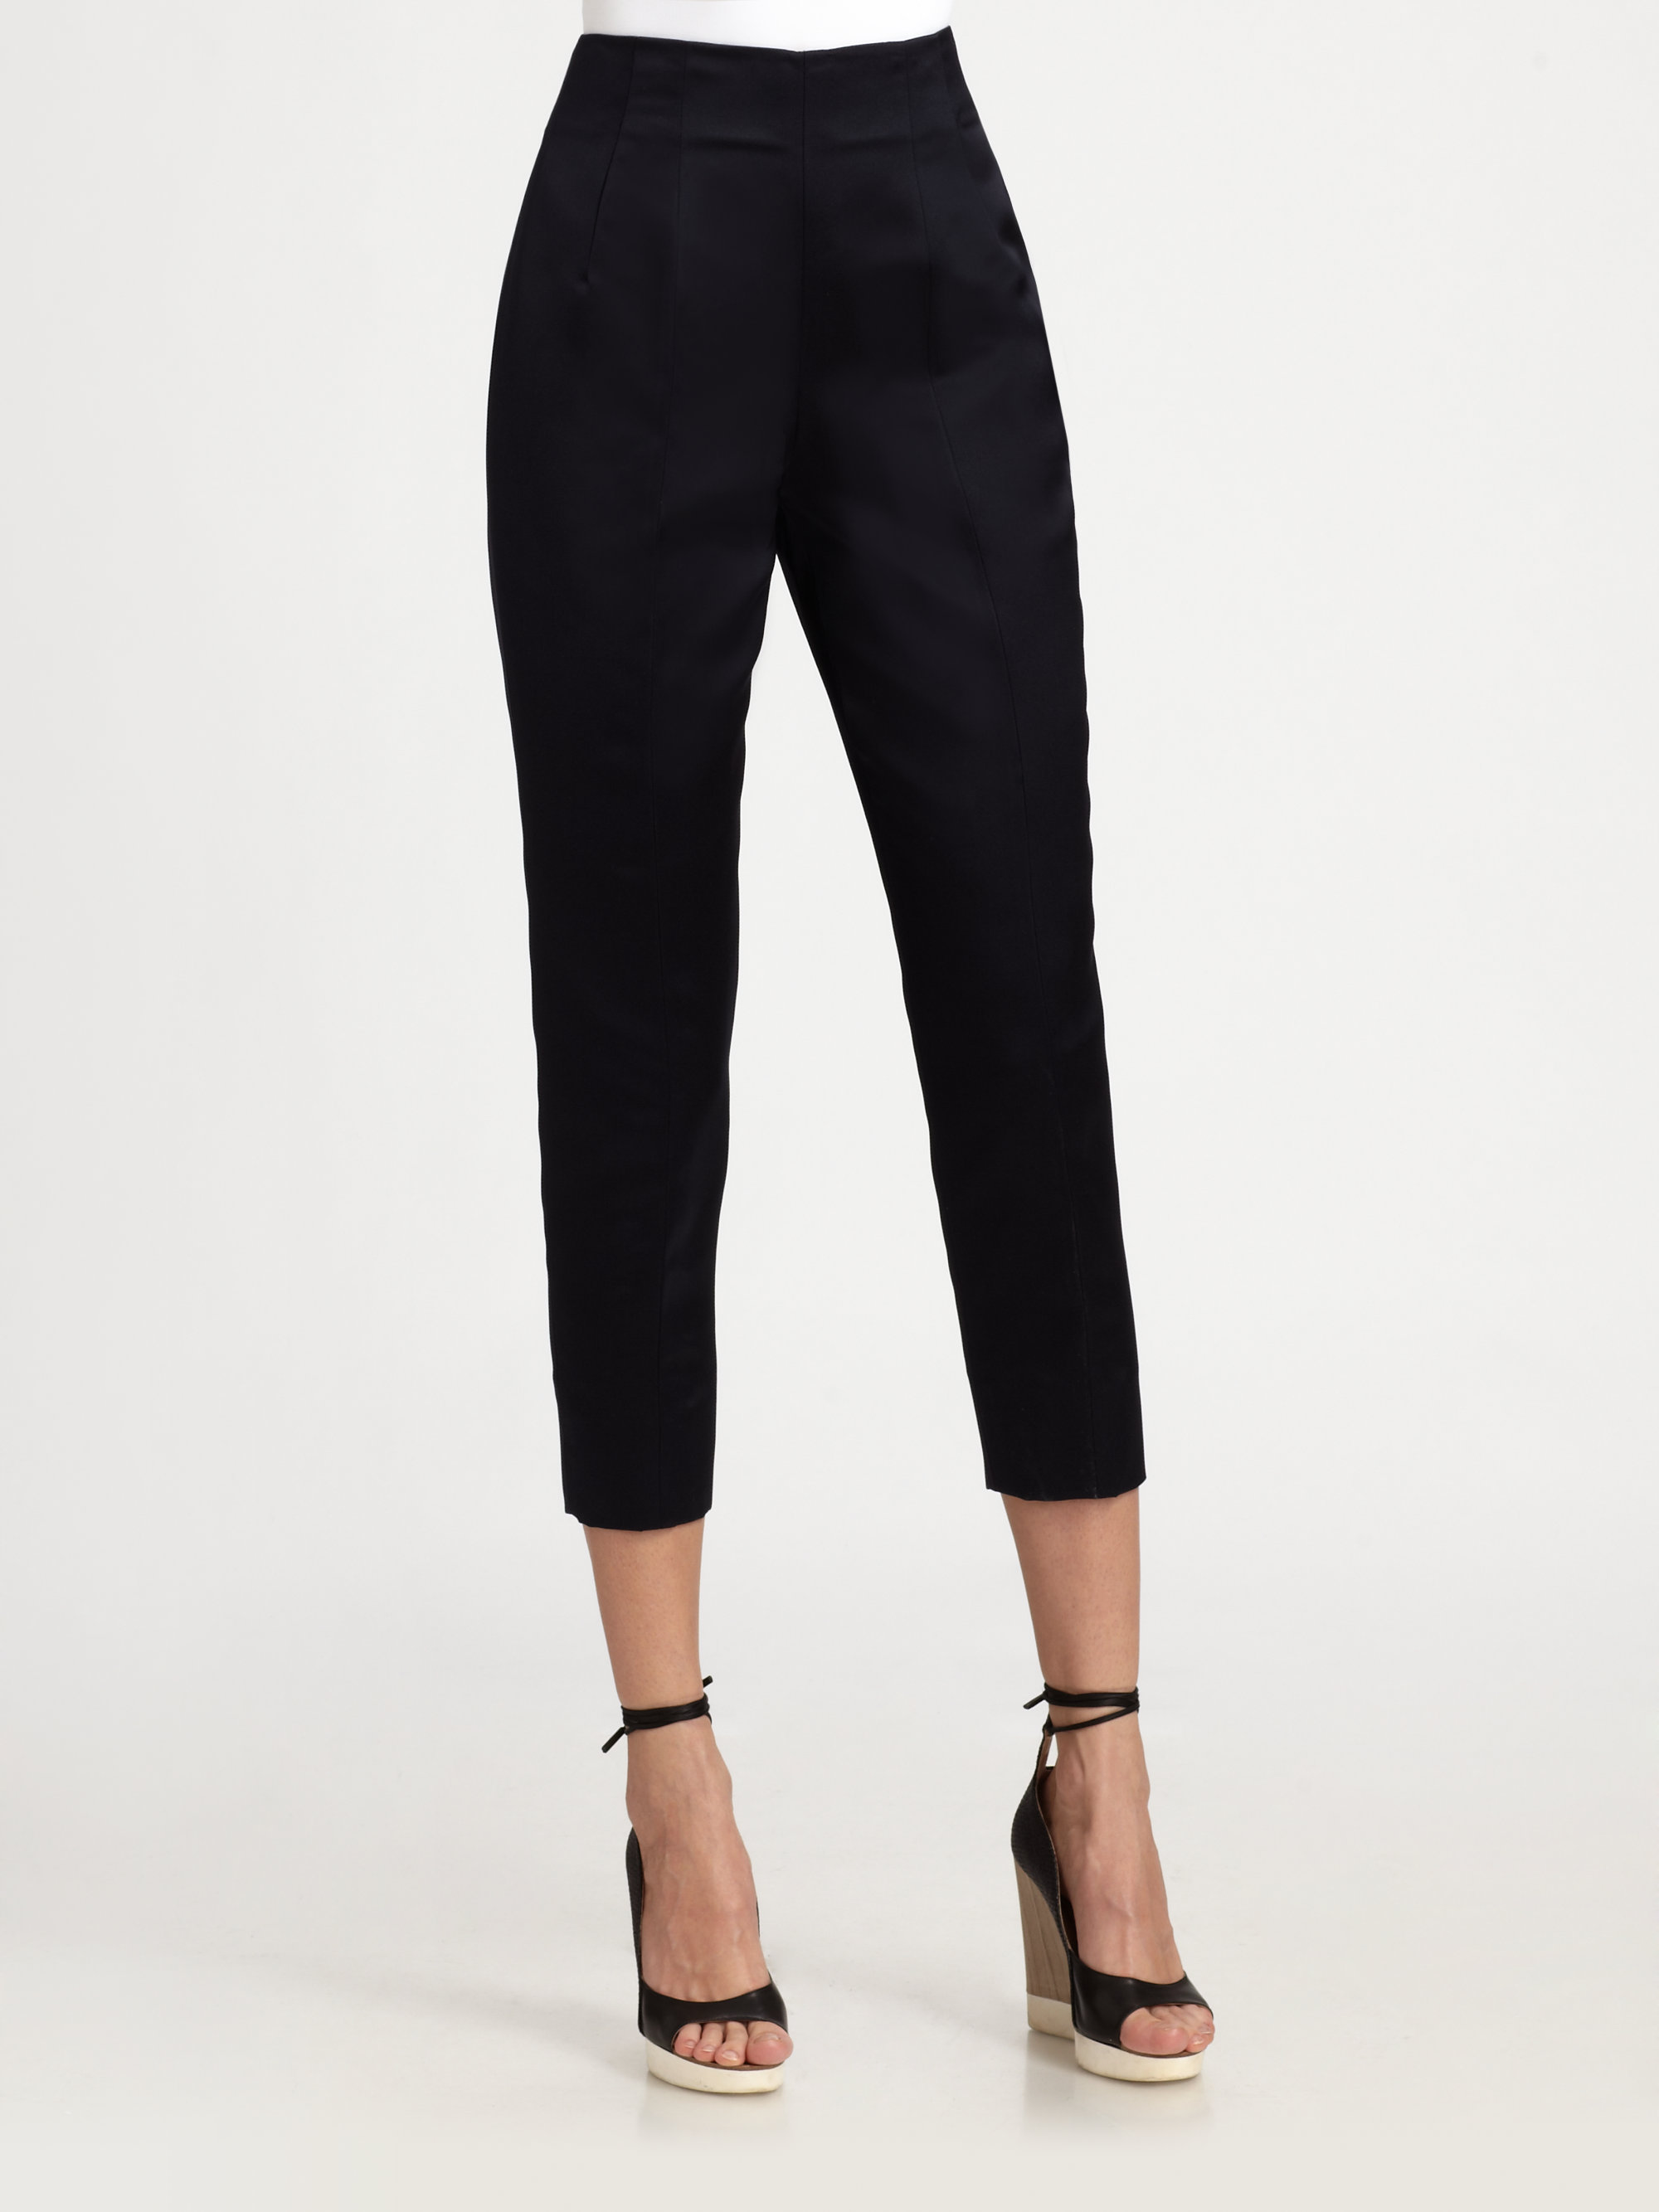 Jil sander Silk Capri Pants in Black | Lyst